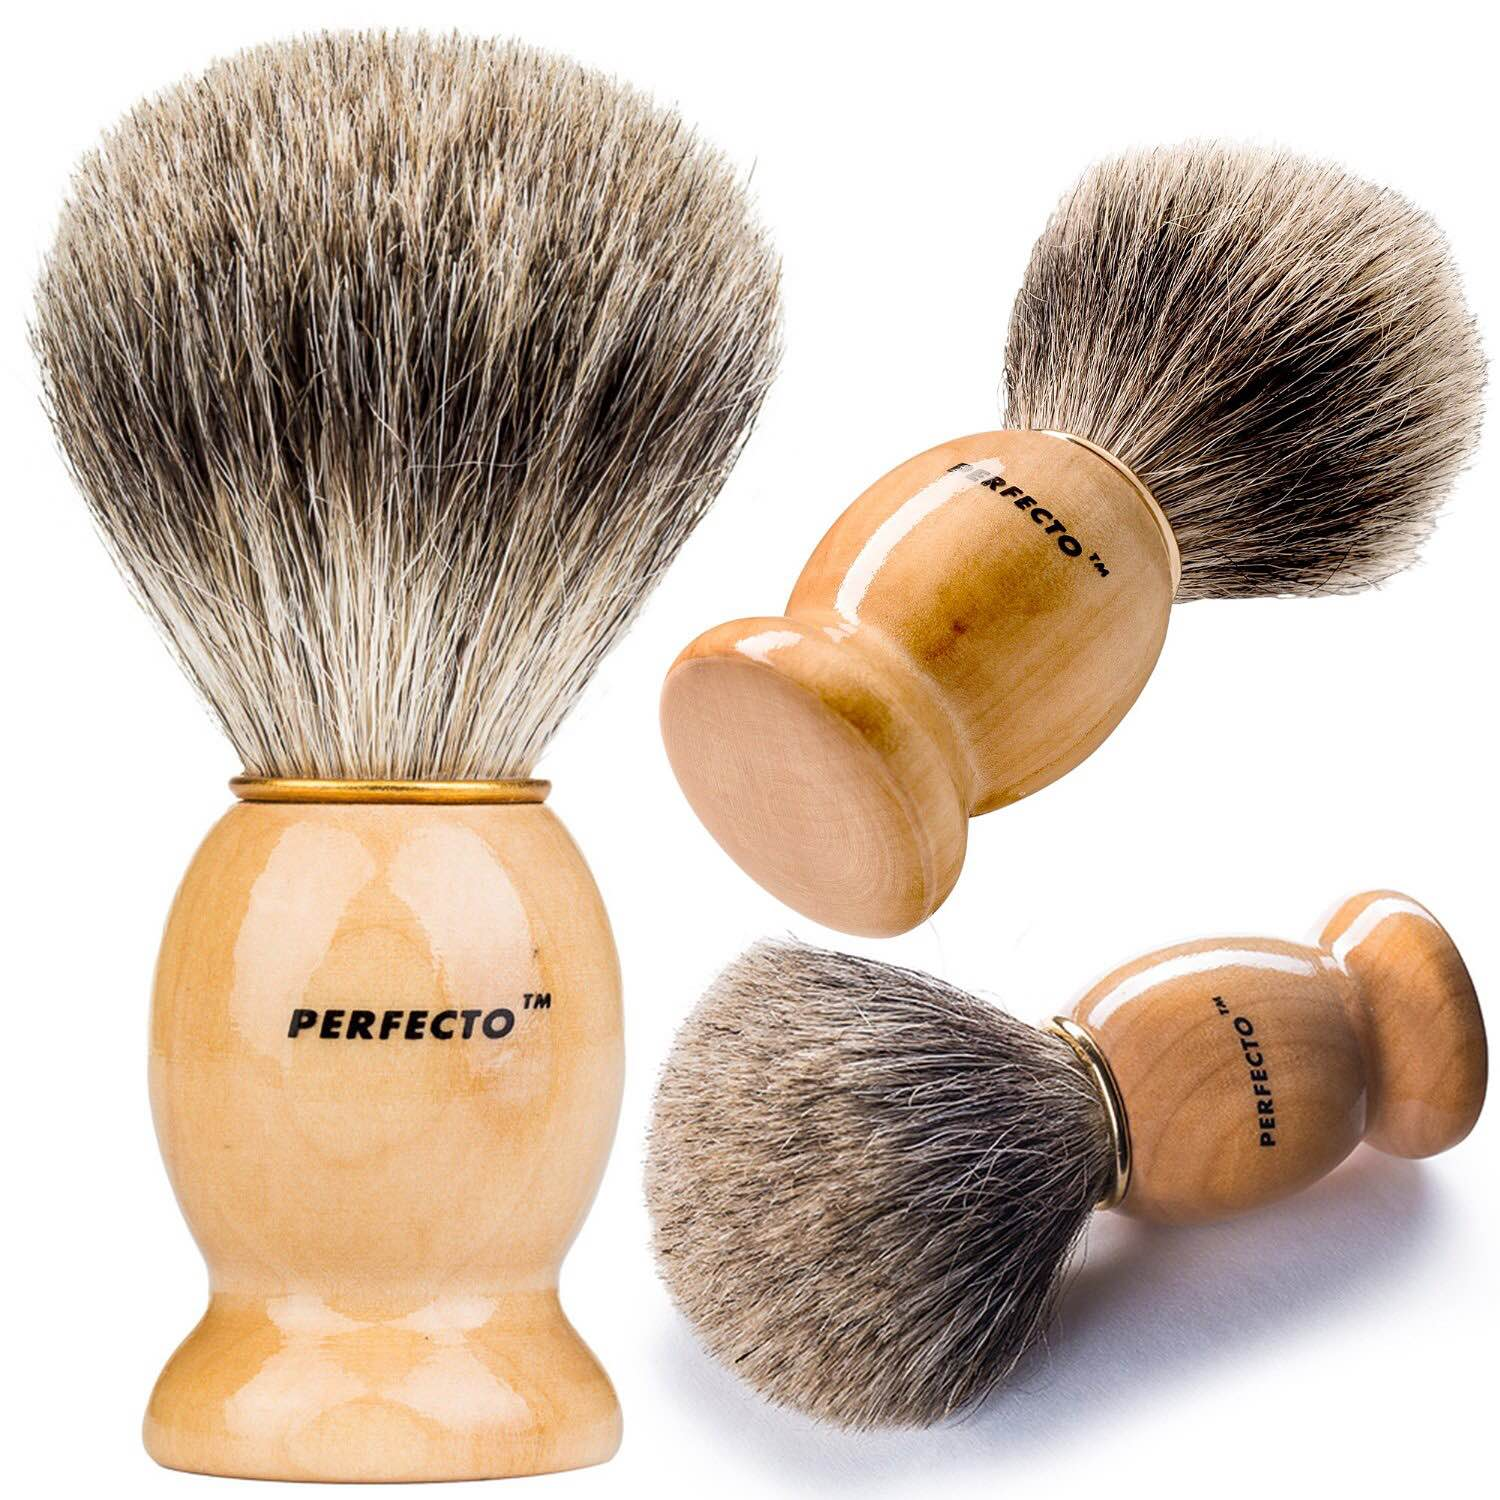 Perfecto's badger shave brush. ($13)